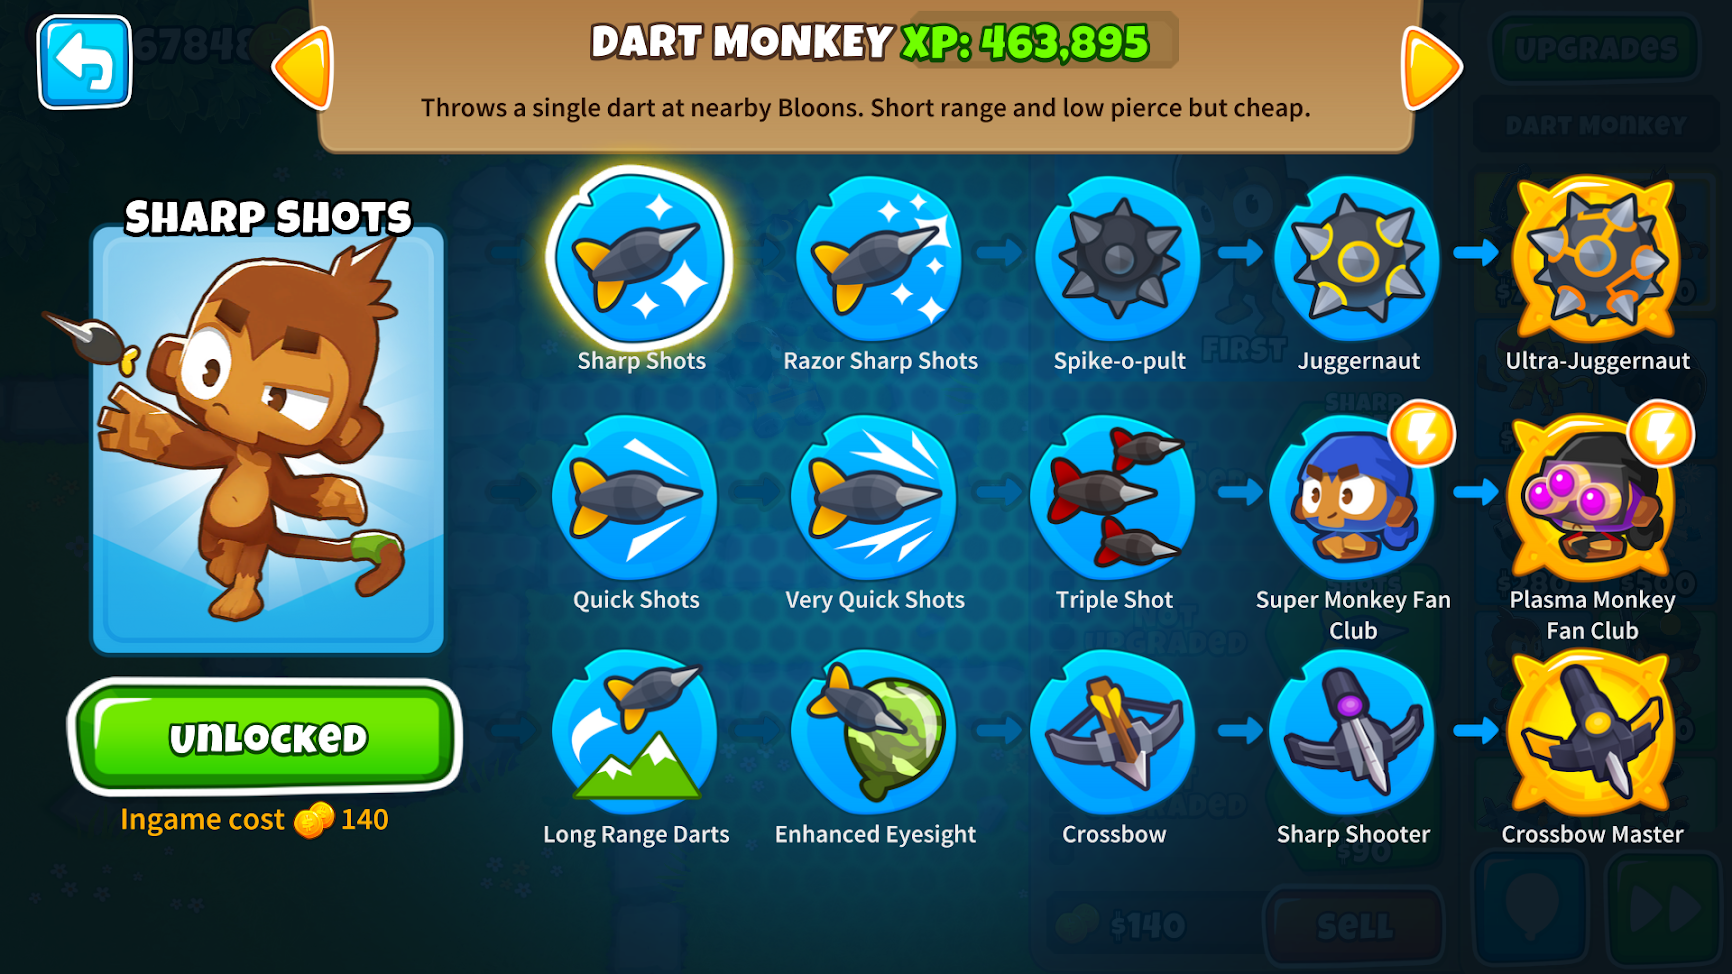 Dart Monkey Guide - Which Dart Monkey Is Best? - BTD6